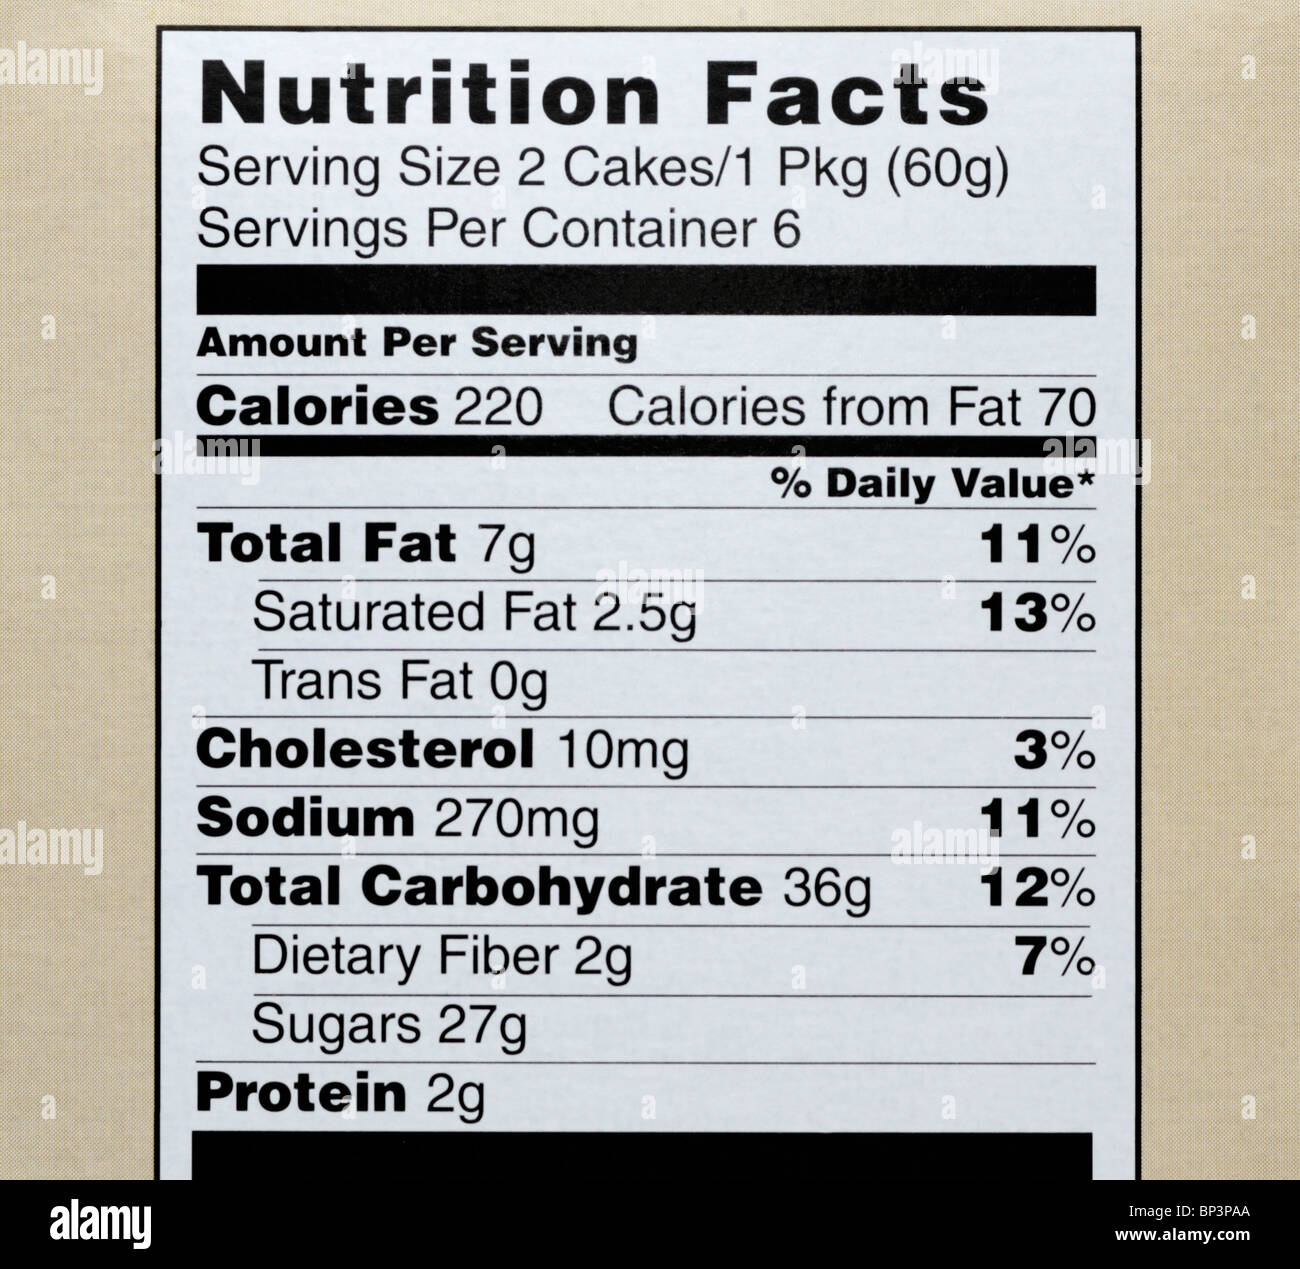 The nutrition label from a cupcake box emphasizing that the product is high in sugar and fat content. - Stock Image